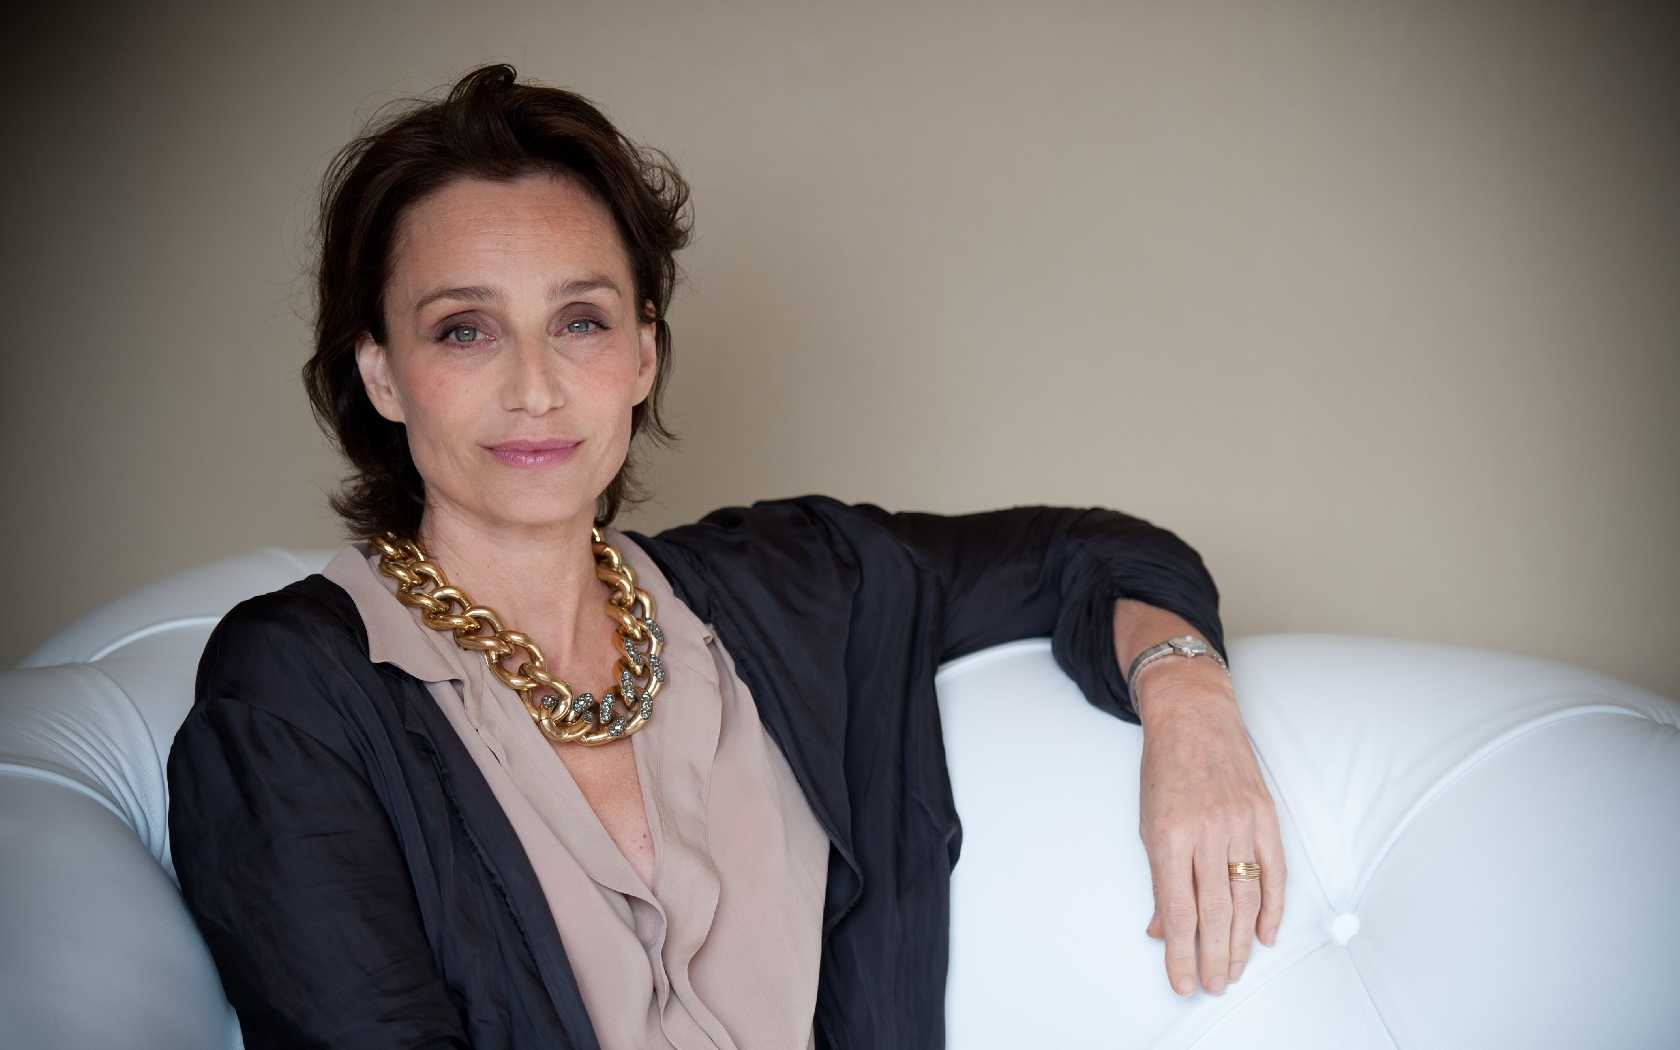 kristin scott thomas computer wallpaper 58219